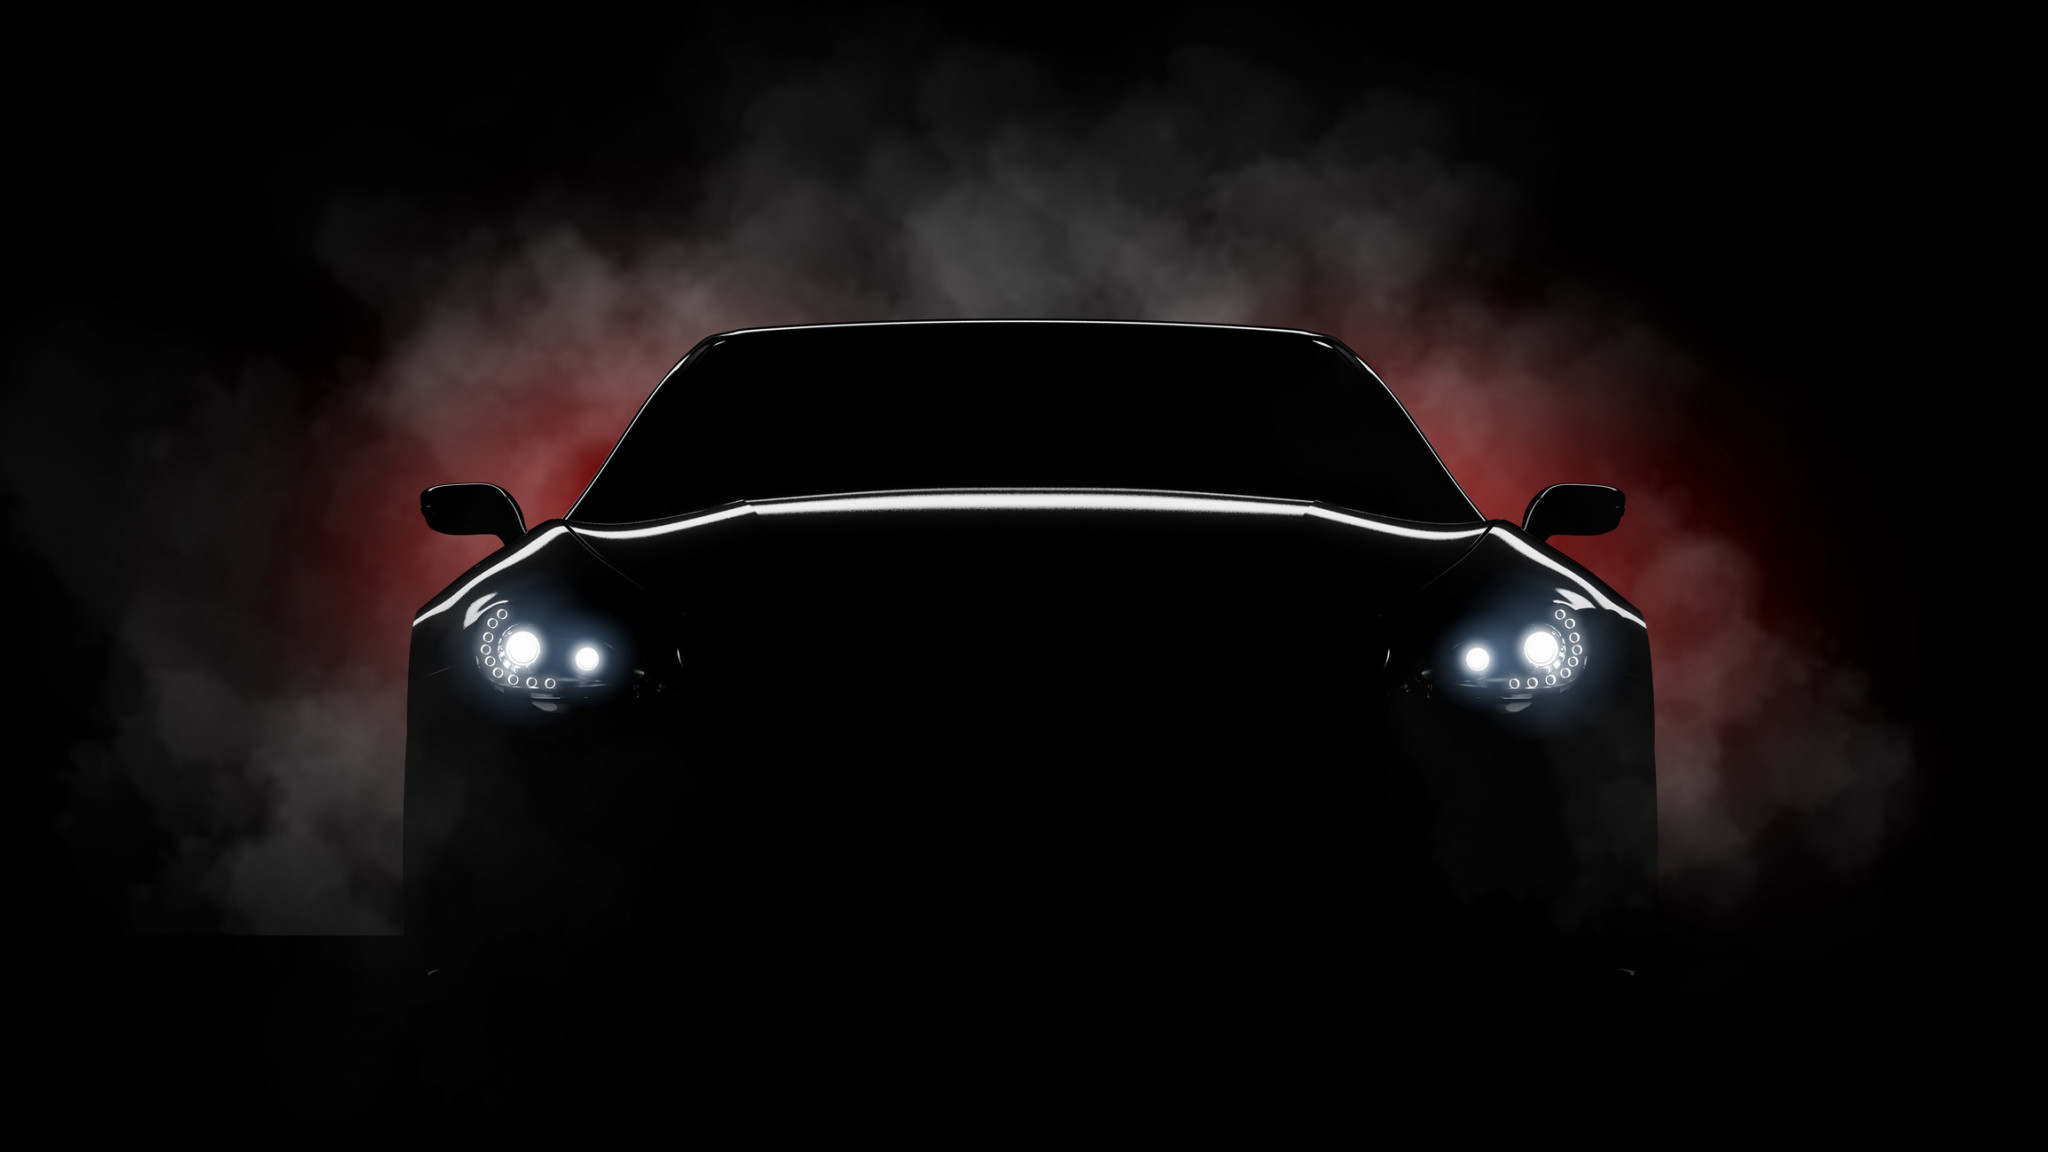 car headlights against dark background